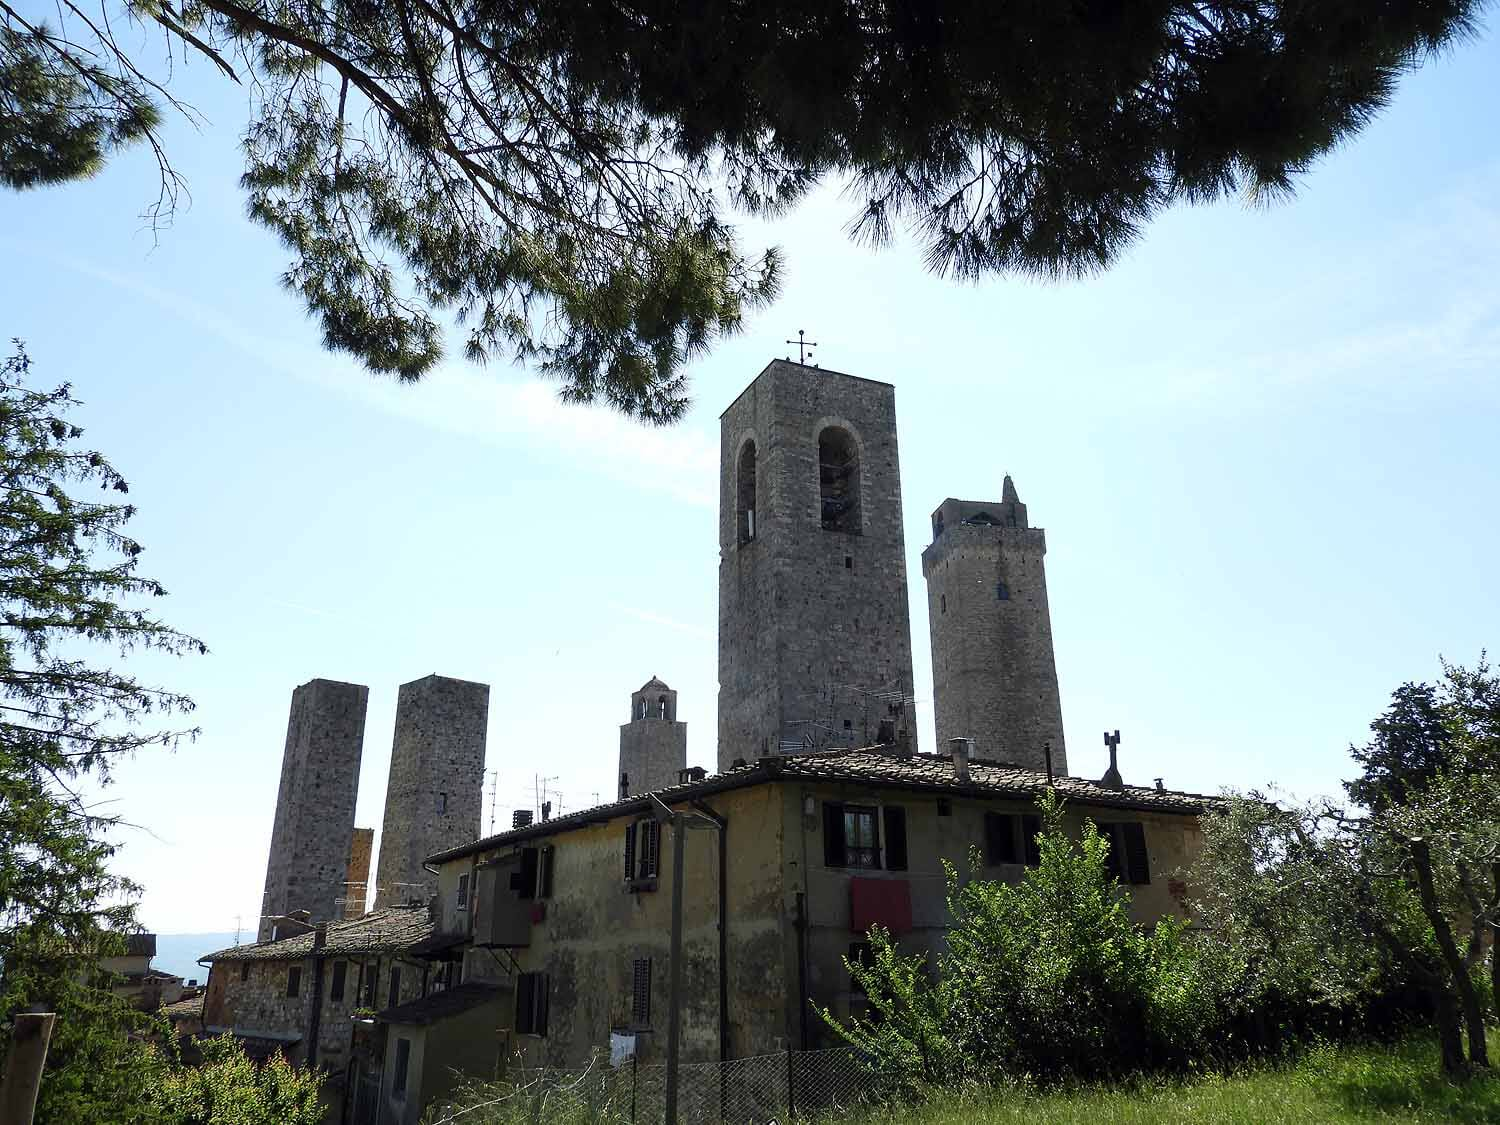 italy-italia-san-gimignano-tuscany-city-towers-five.JPG